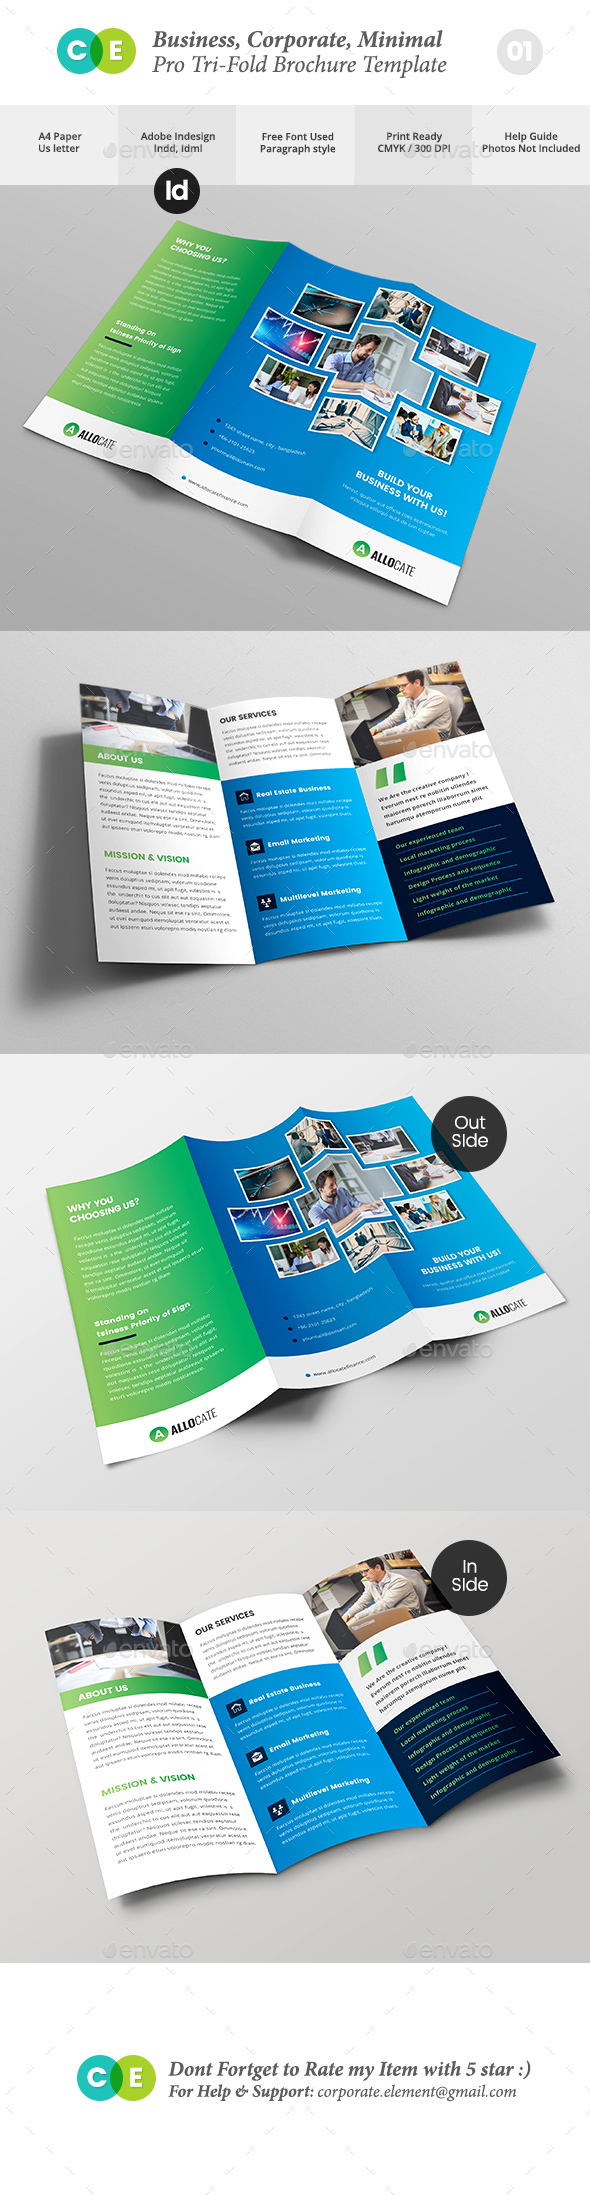 Business Clean Corporate Pro Tri-Fold Brochure V01 - Brochures Print Templates